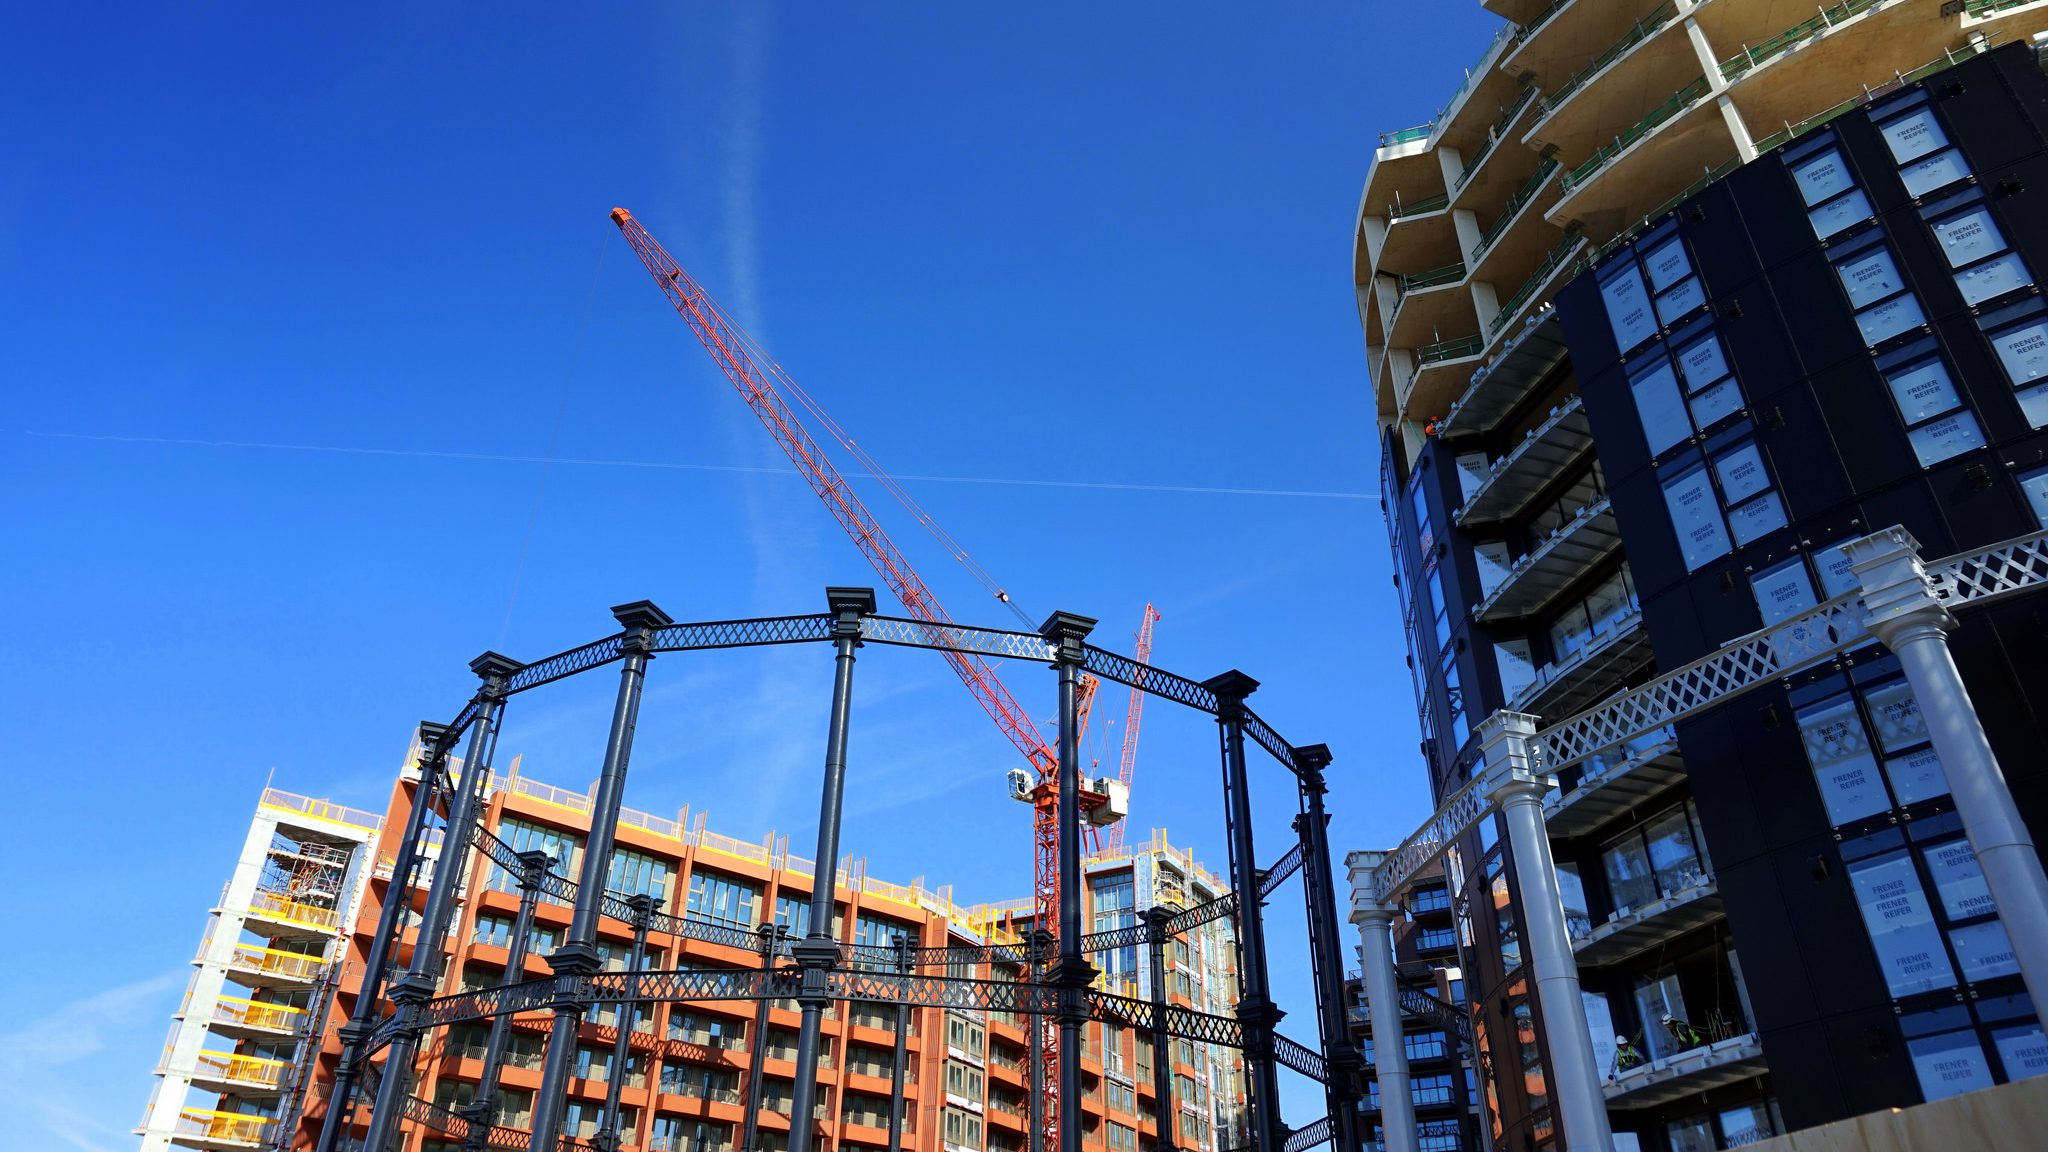 Gasholder Park and Buildings, King's Cross Central, London